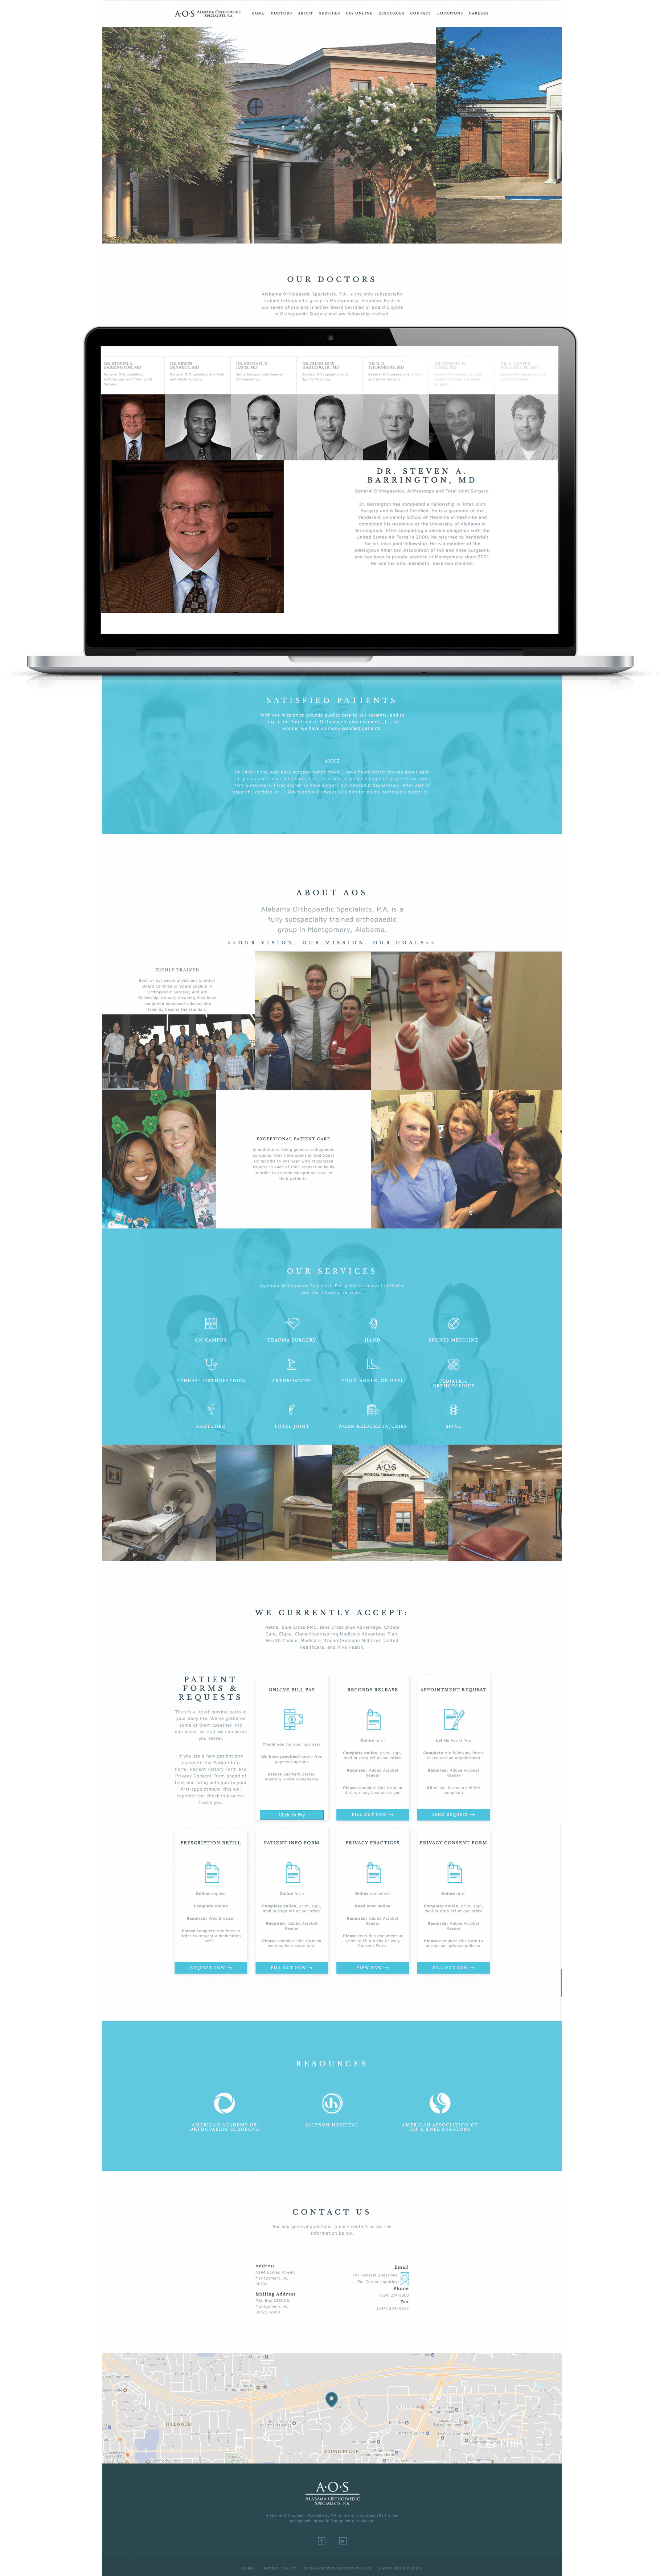 Alabama Orthopaedic Specialists | Baker Street Digital Media